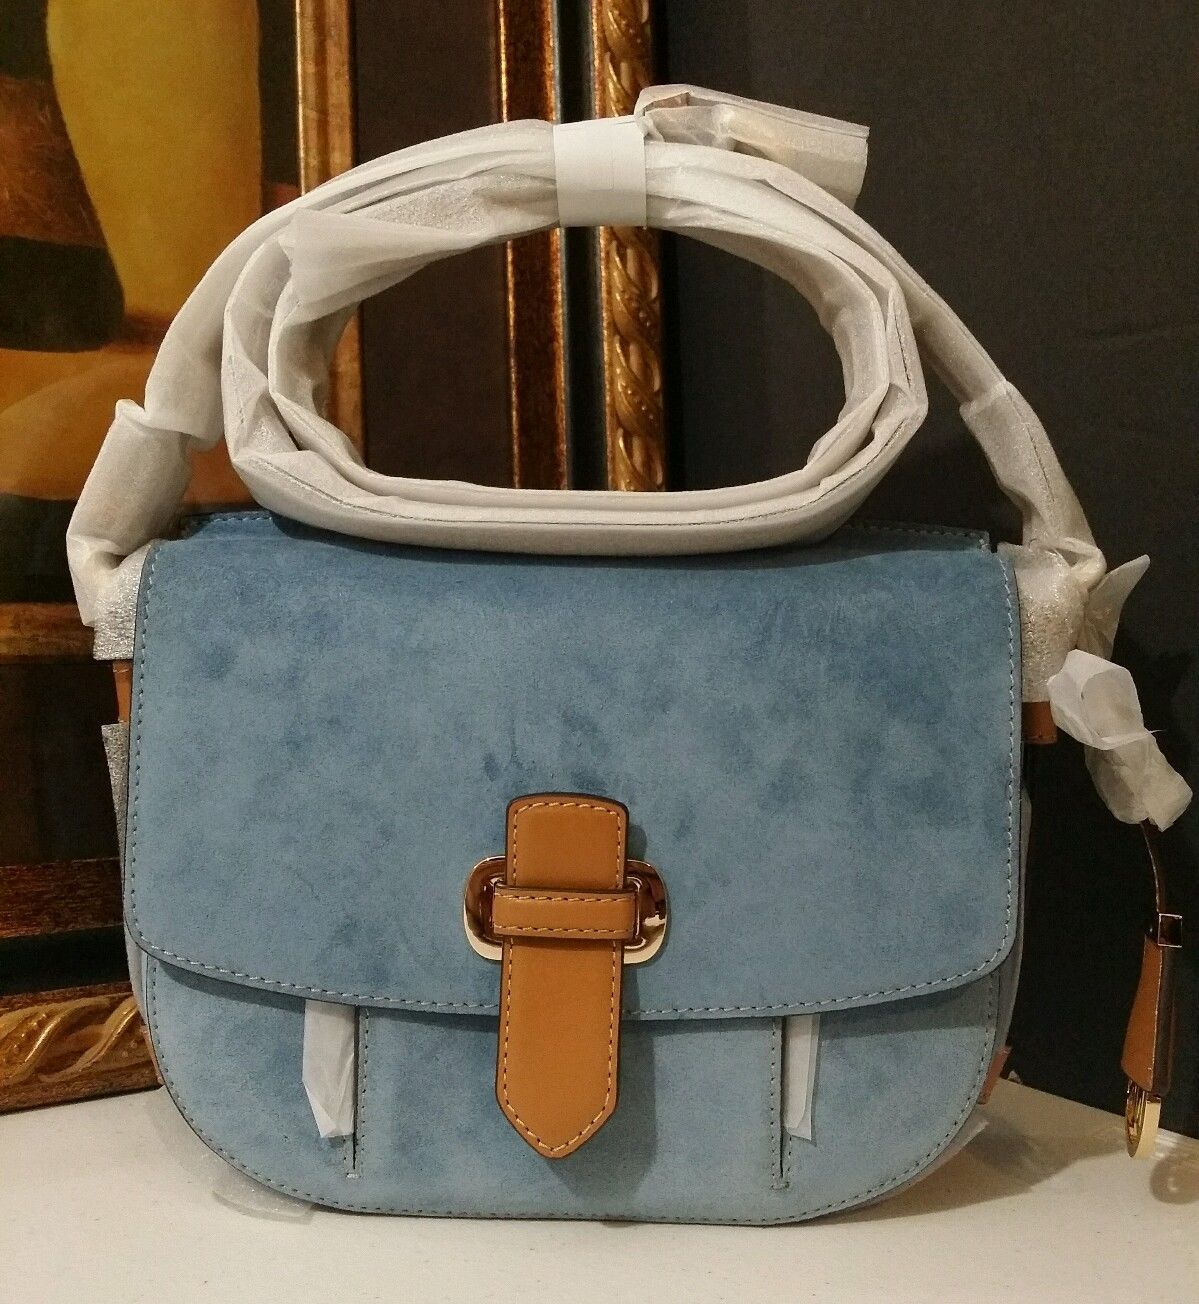 NWT MICHAEL KORS Romy Medium Crossbody Suede Leather Denim MSRP $298